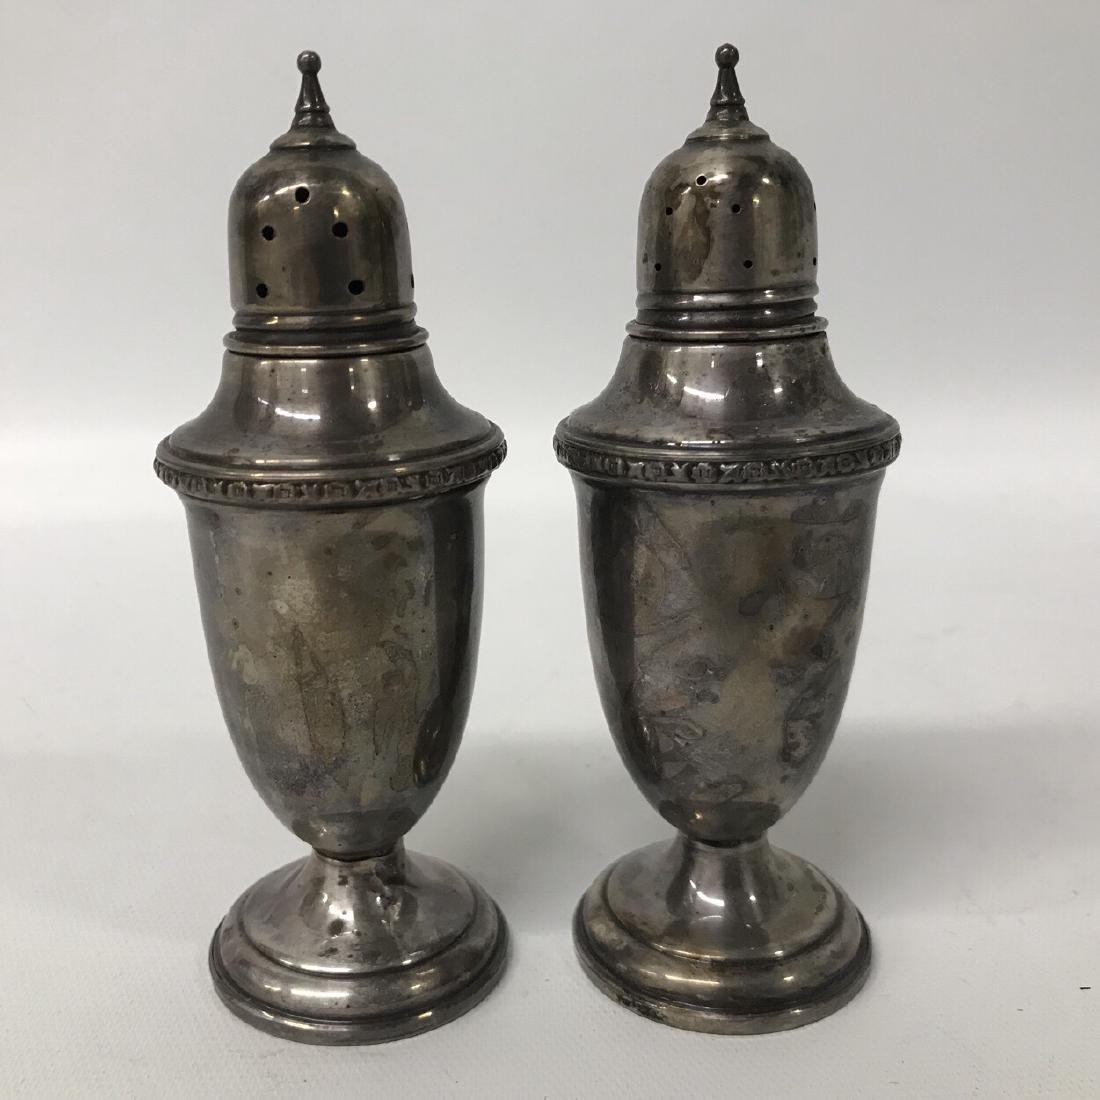 Arrowsmith Sterling Silver Salt and Pepper Shakers,